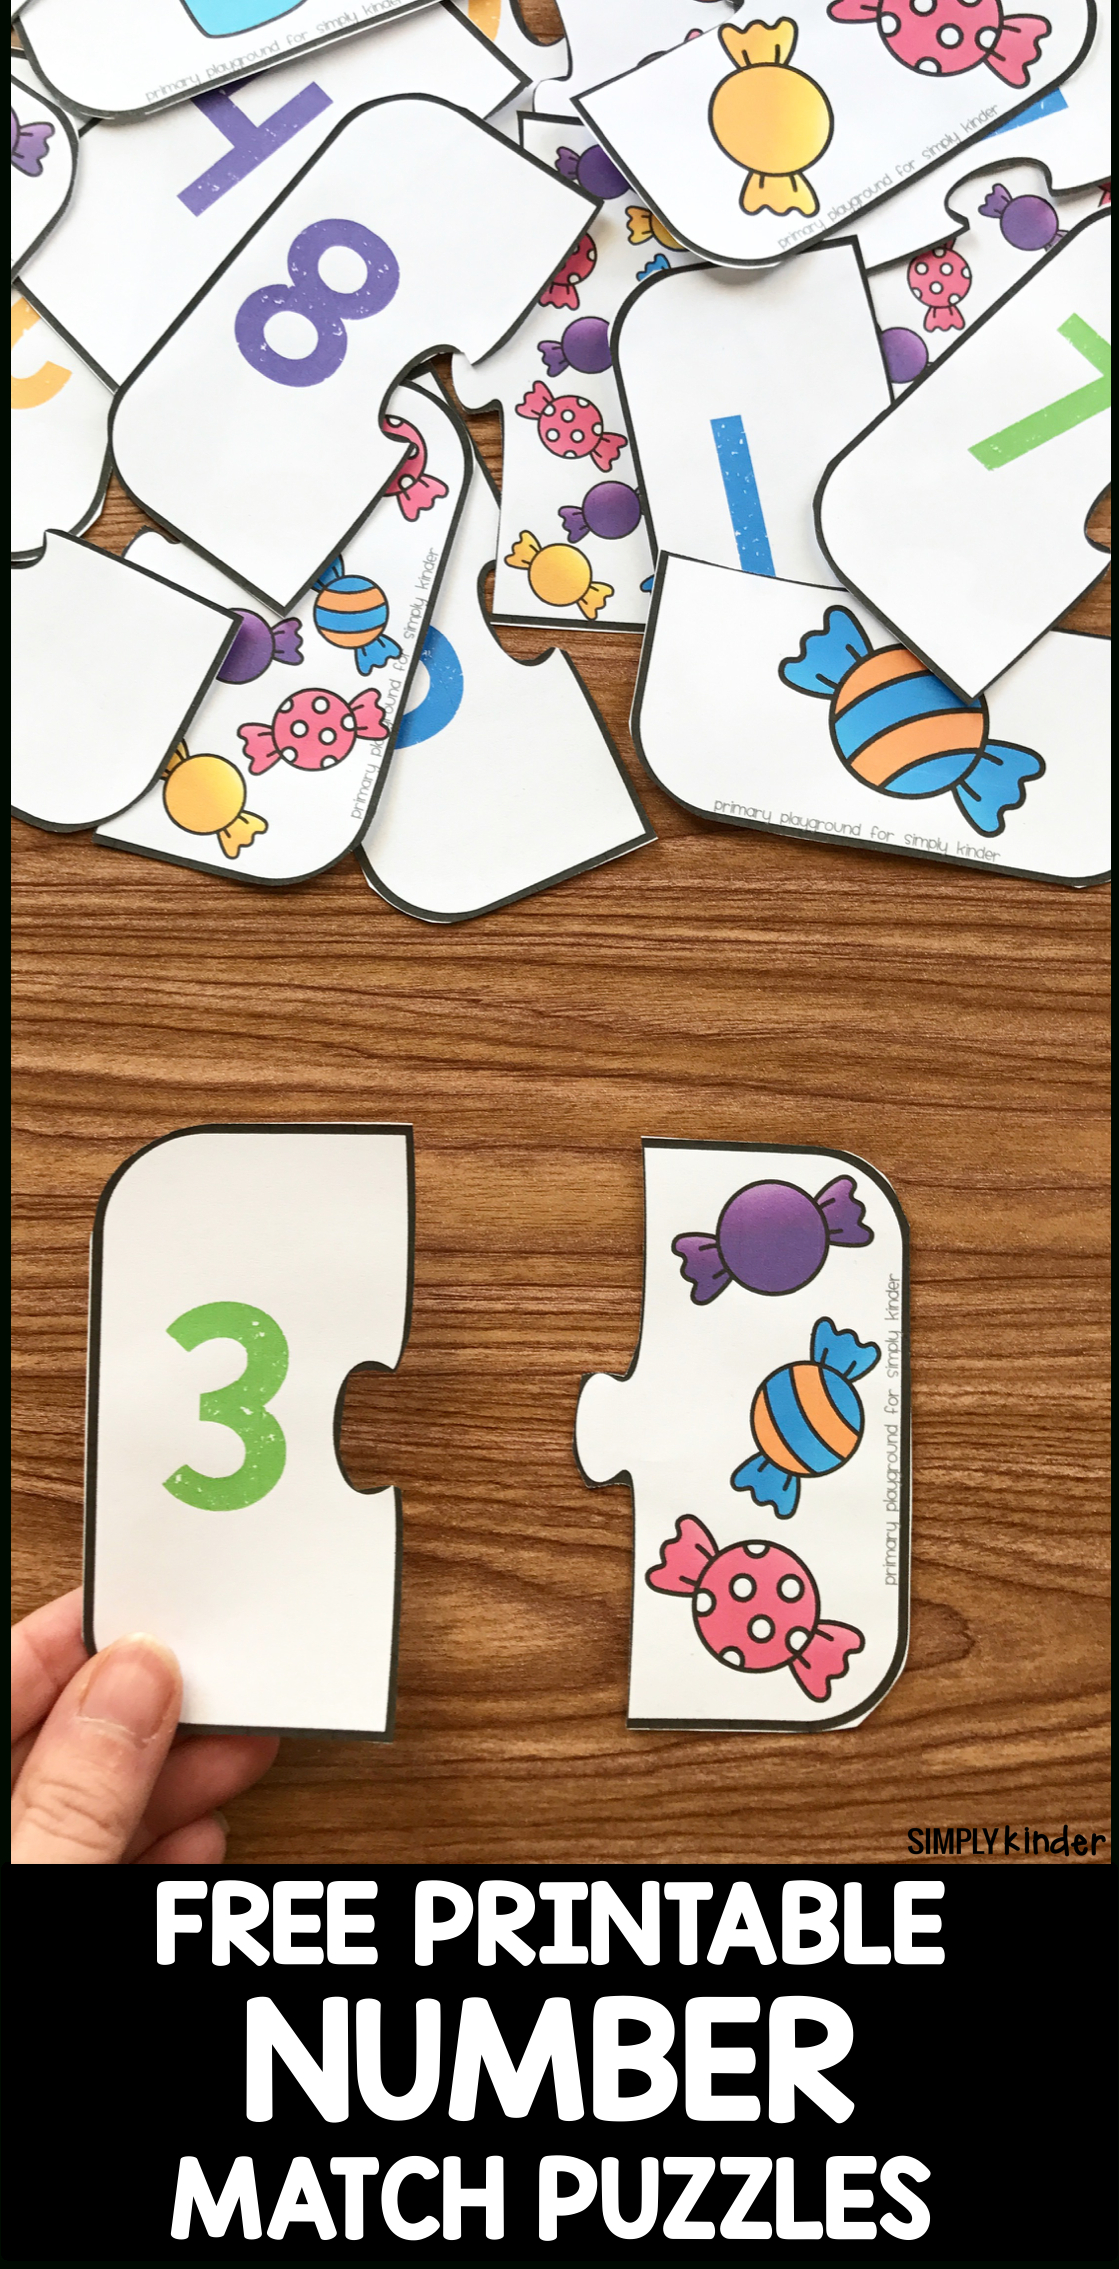 Free Printable Number Match Puzzles - Simply Kinder - Printable Puzzles For Preschoolers